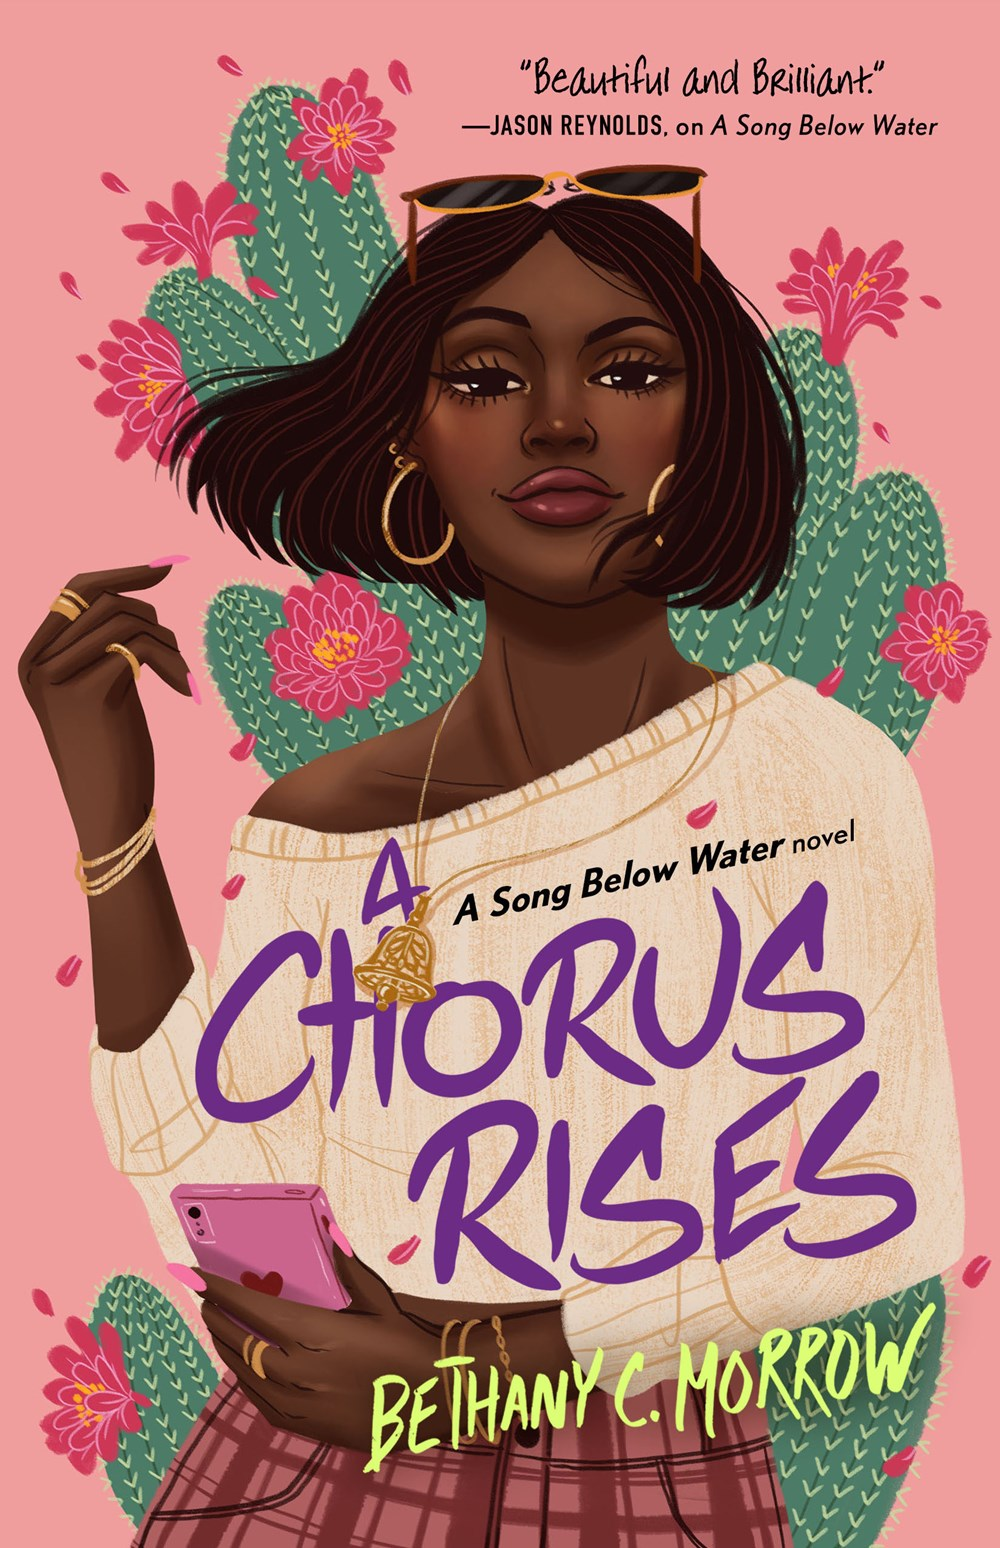 A Chorus Rises (A Song Below Water, #2)